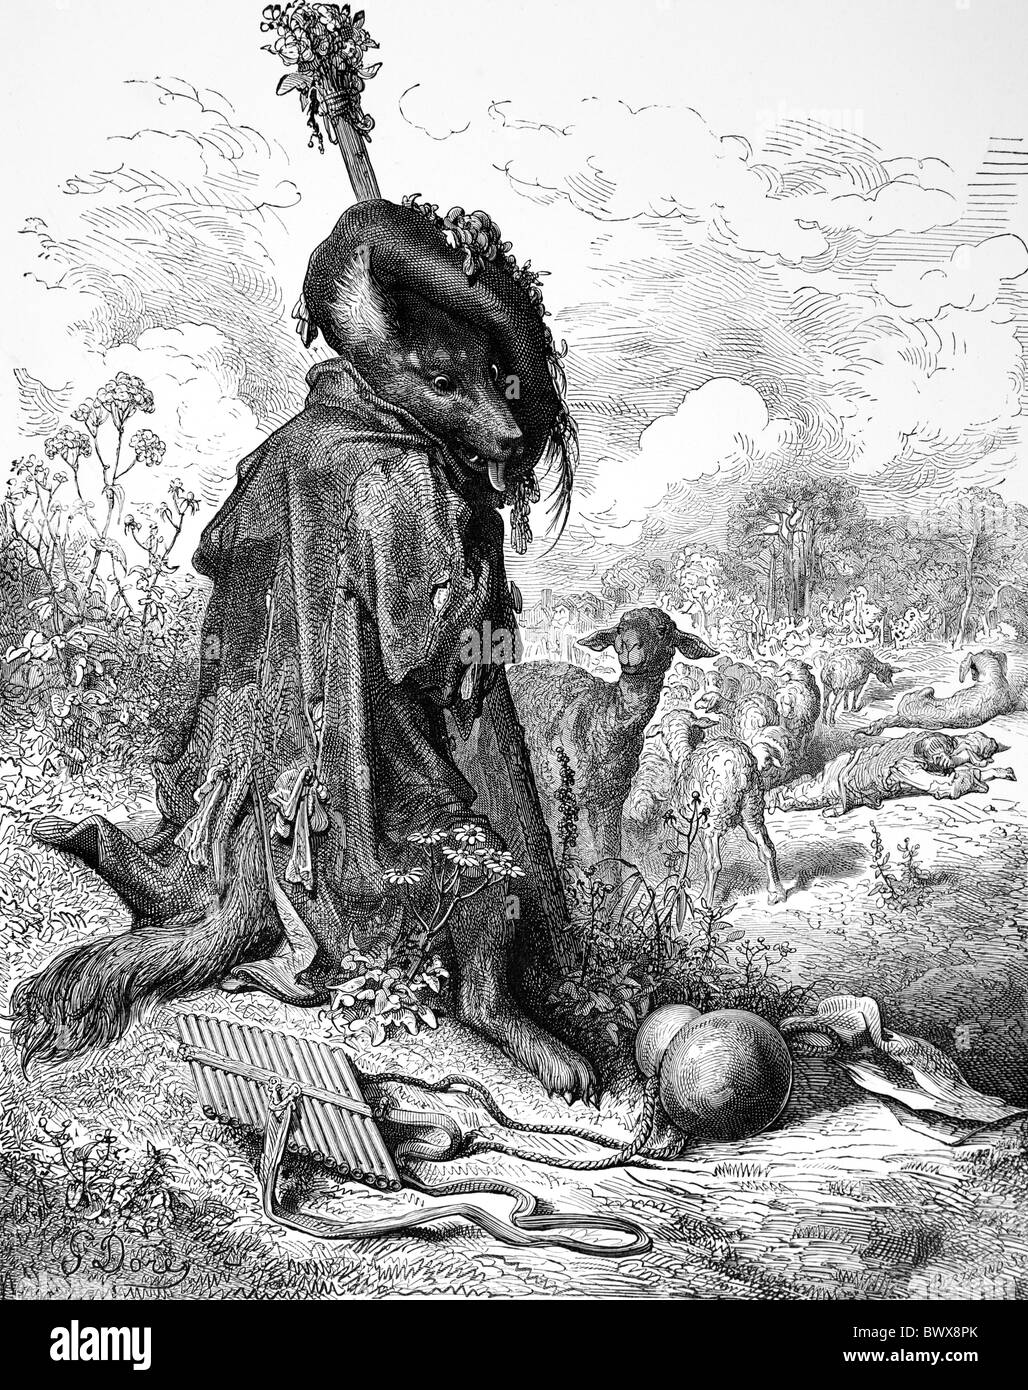 Gustave Doré; The Wolf Turned Shepherd from Jean de la Fontaine's Fables; Black and White Engraving - Stock Image